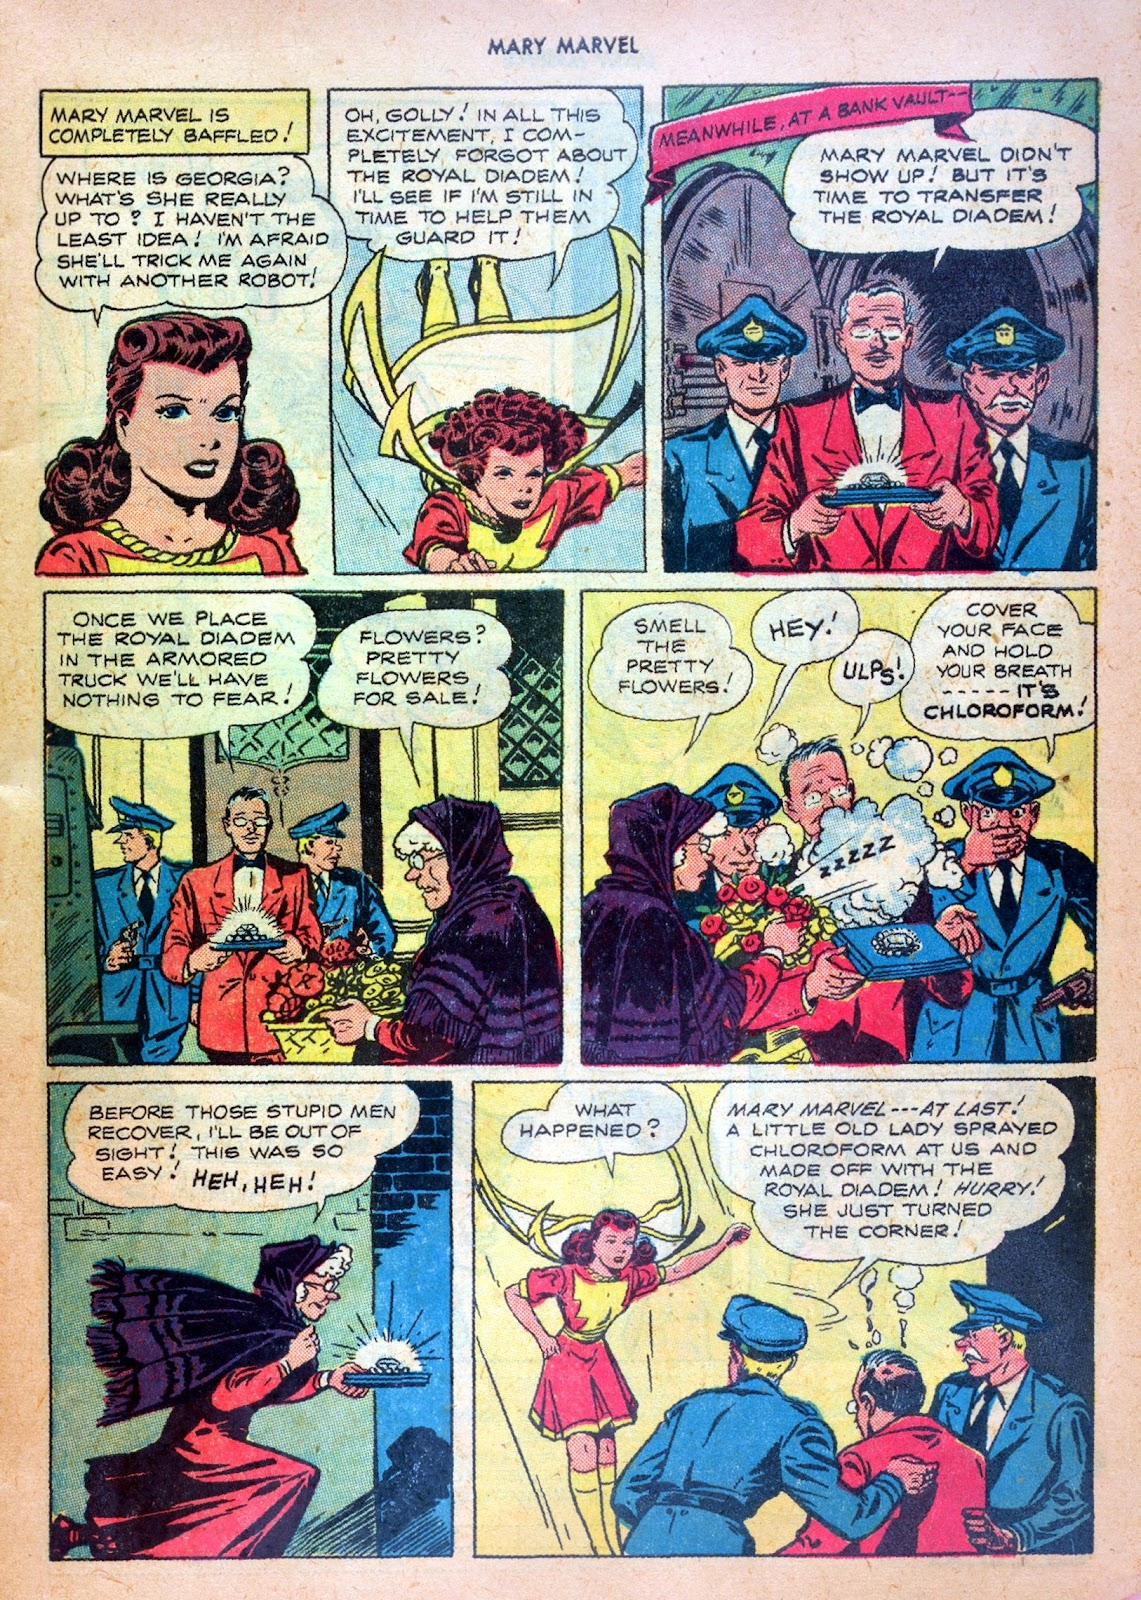 Read online Mary Marvel comic -  Issue #20 - 7